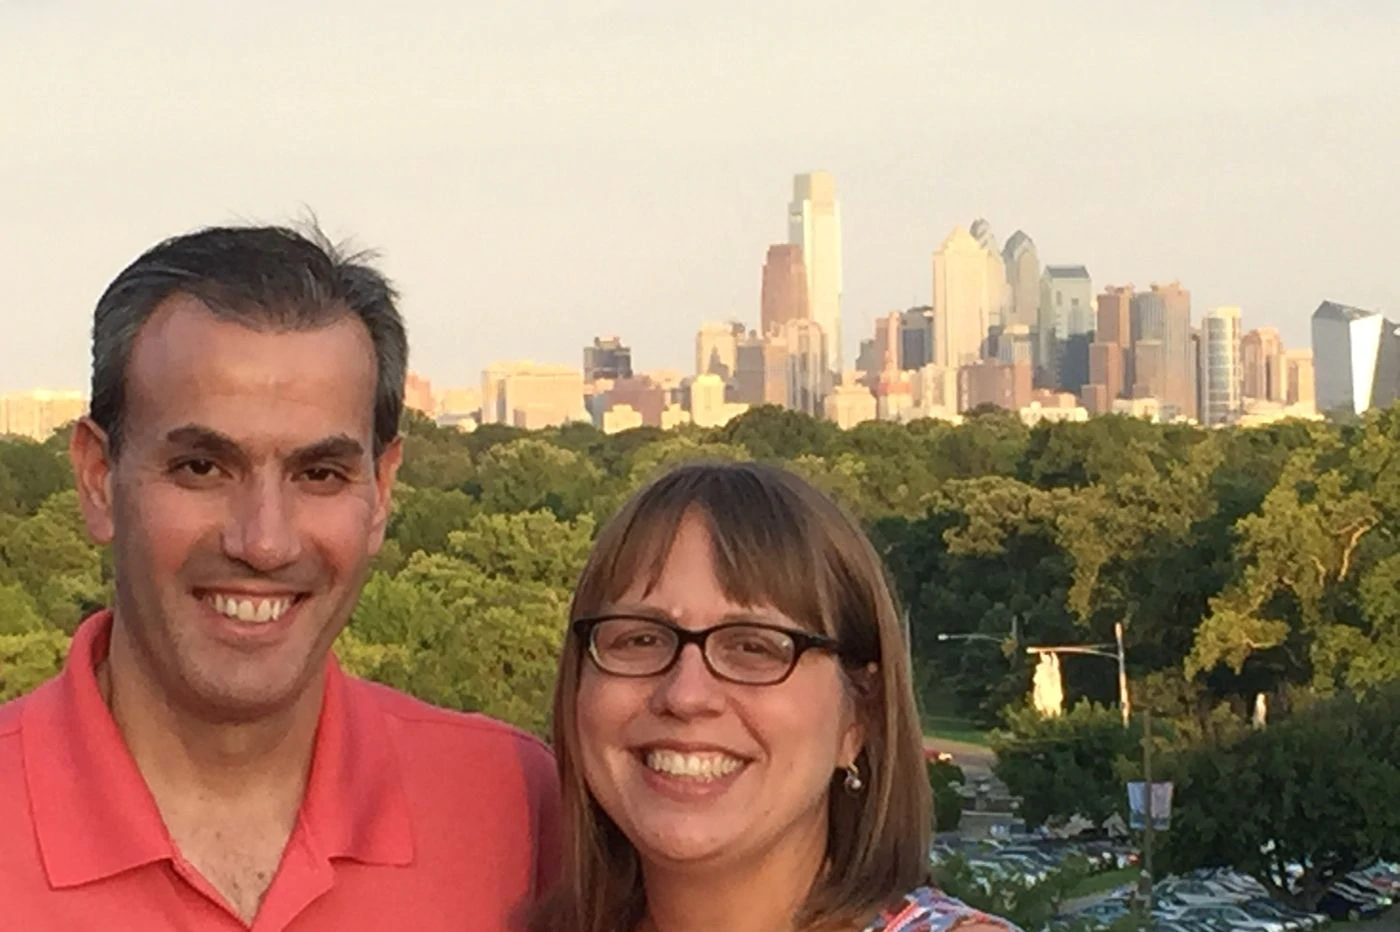 Glenside Woman Shares Story of Her Husband's Two-Time Struggle With Cancer